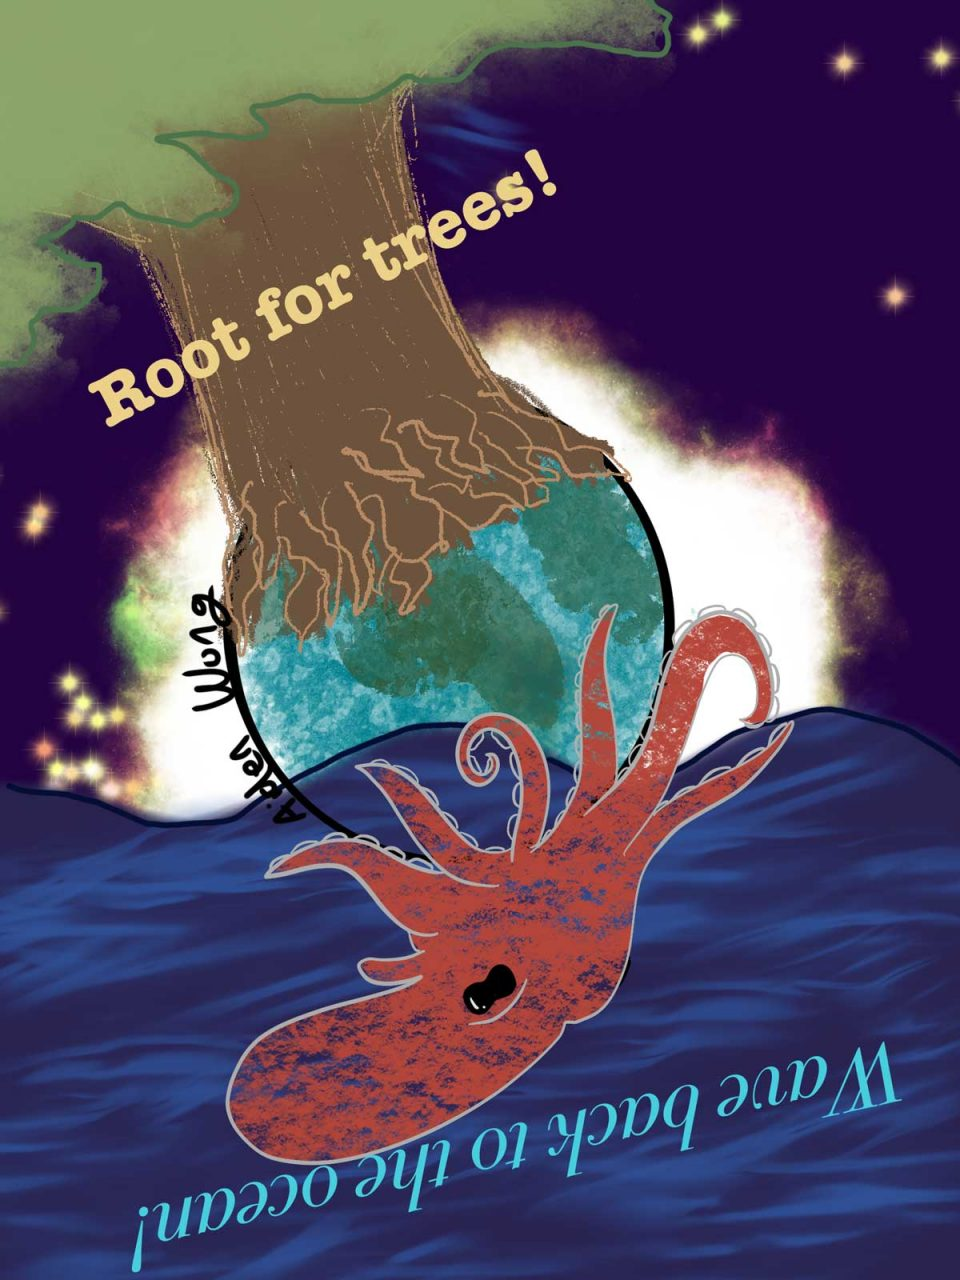 Root for trees! Wave back to the ocean. Digital art. In front of an abstract galaxy, a globe is topped with a gigantic tree covering most of a hempisphere. Rotating the image 180 degrees, a giant red octopus grabs onto the opposite site of the globe in a dark blue ocean.